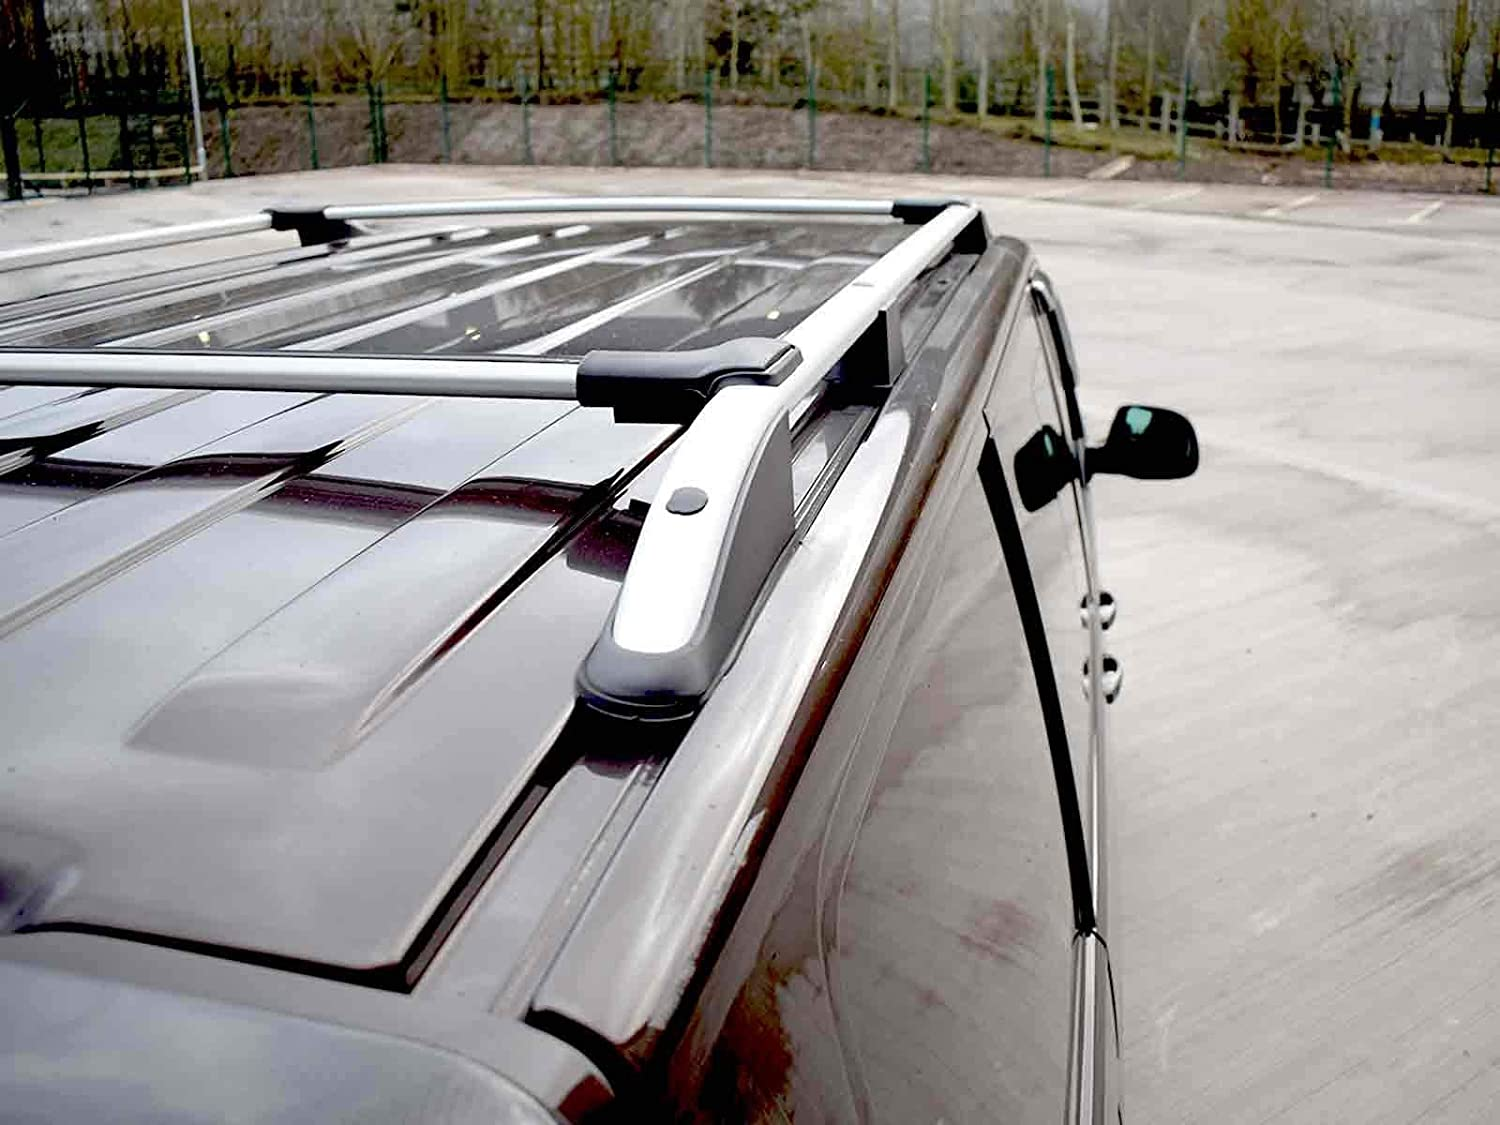 Silver Aluminium Pair of Roof Rails and Pair of Cross Bars Set for VW Transporter T6 SWB 2015 on